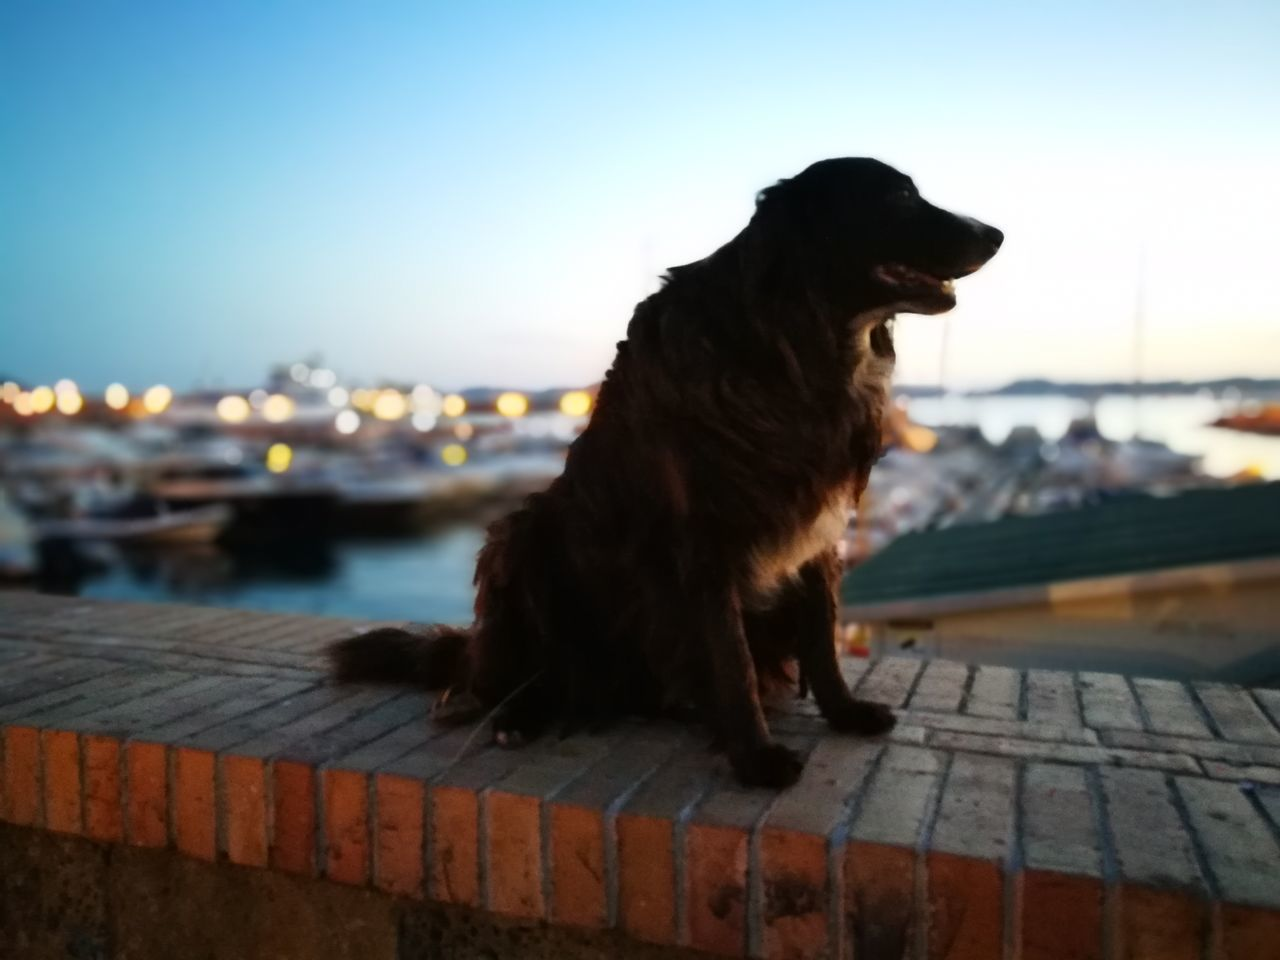 one animal, pets, domestic animals, animal themes, sitting, sunset, dog, outdoors, focus on foreground, sky, mammal, no people, water, harbor, roof, clear sky, building exterior, nature, day, city, close-up